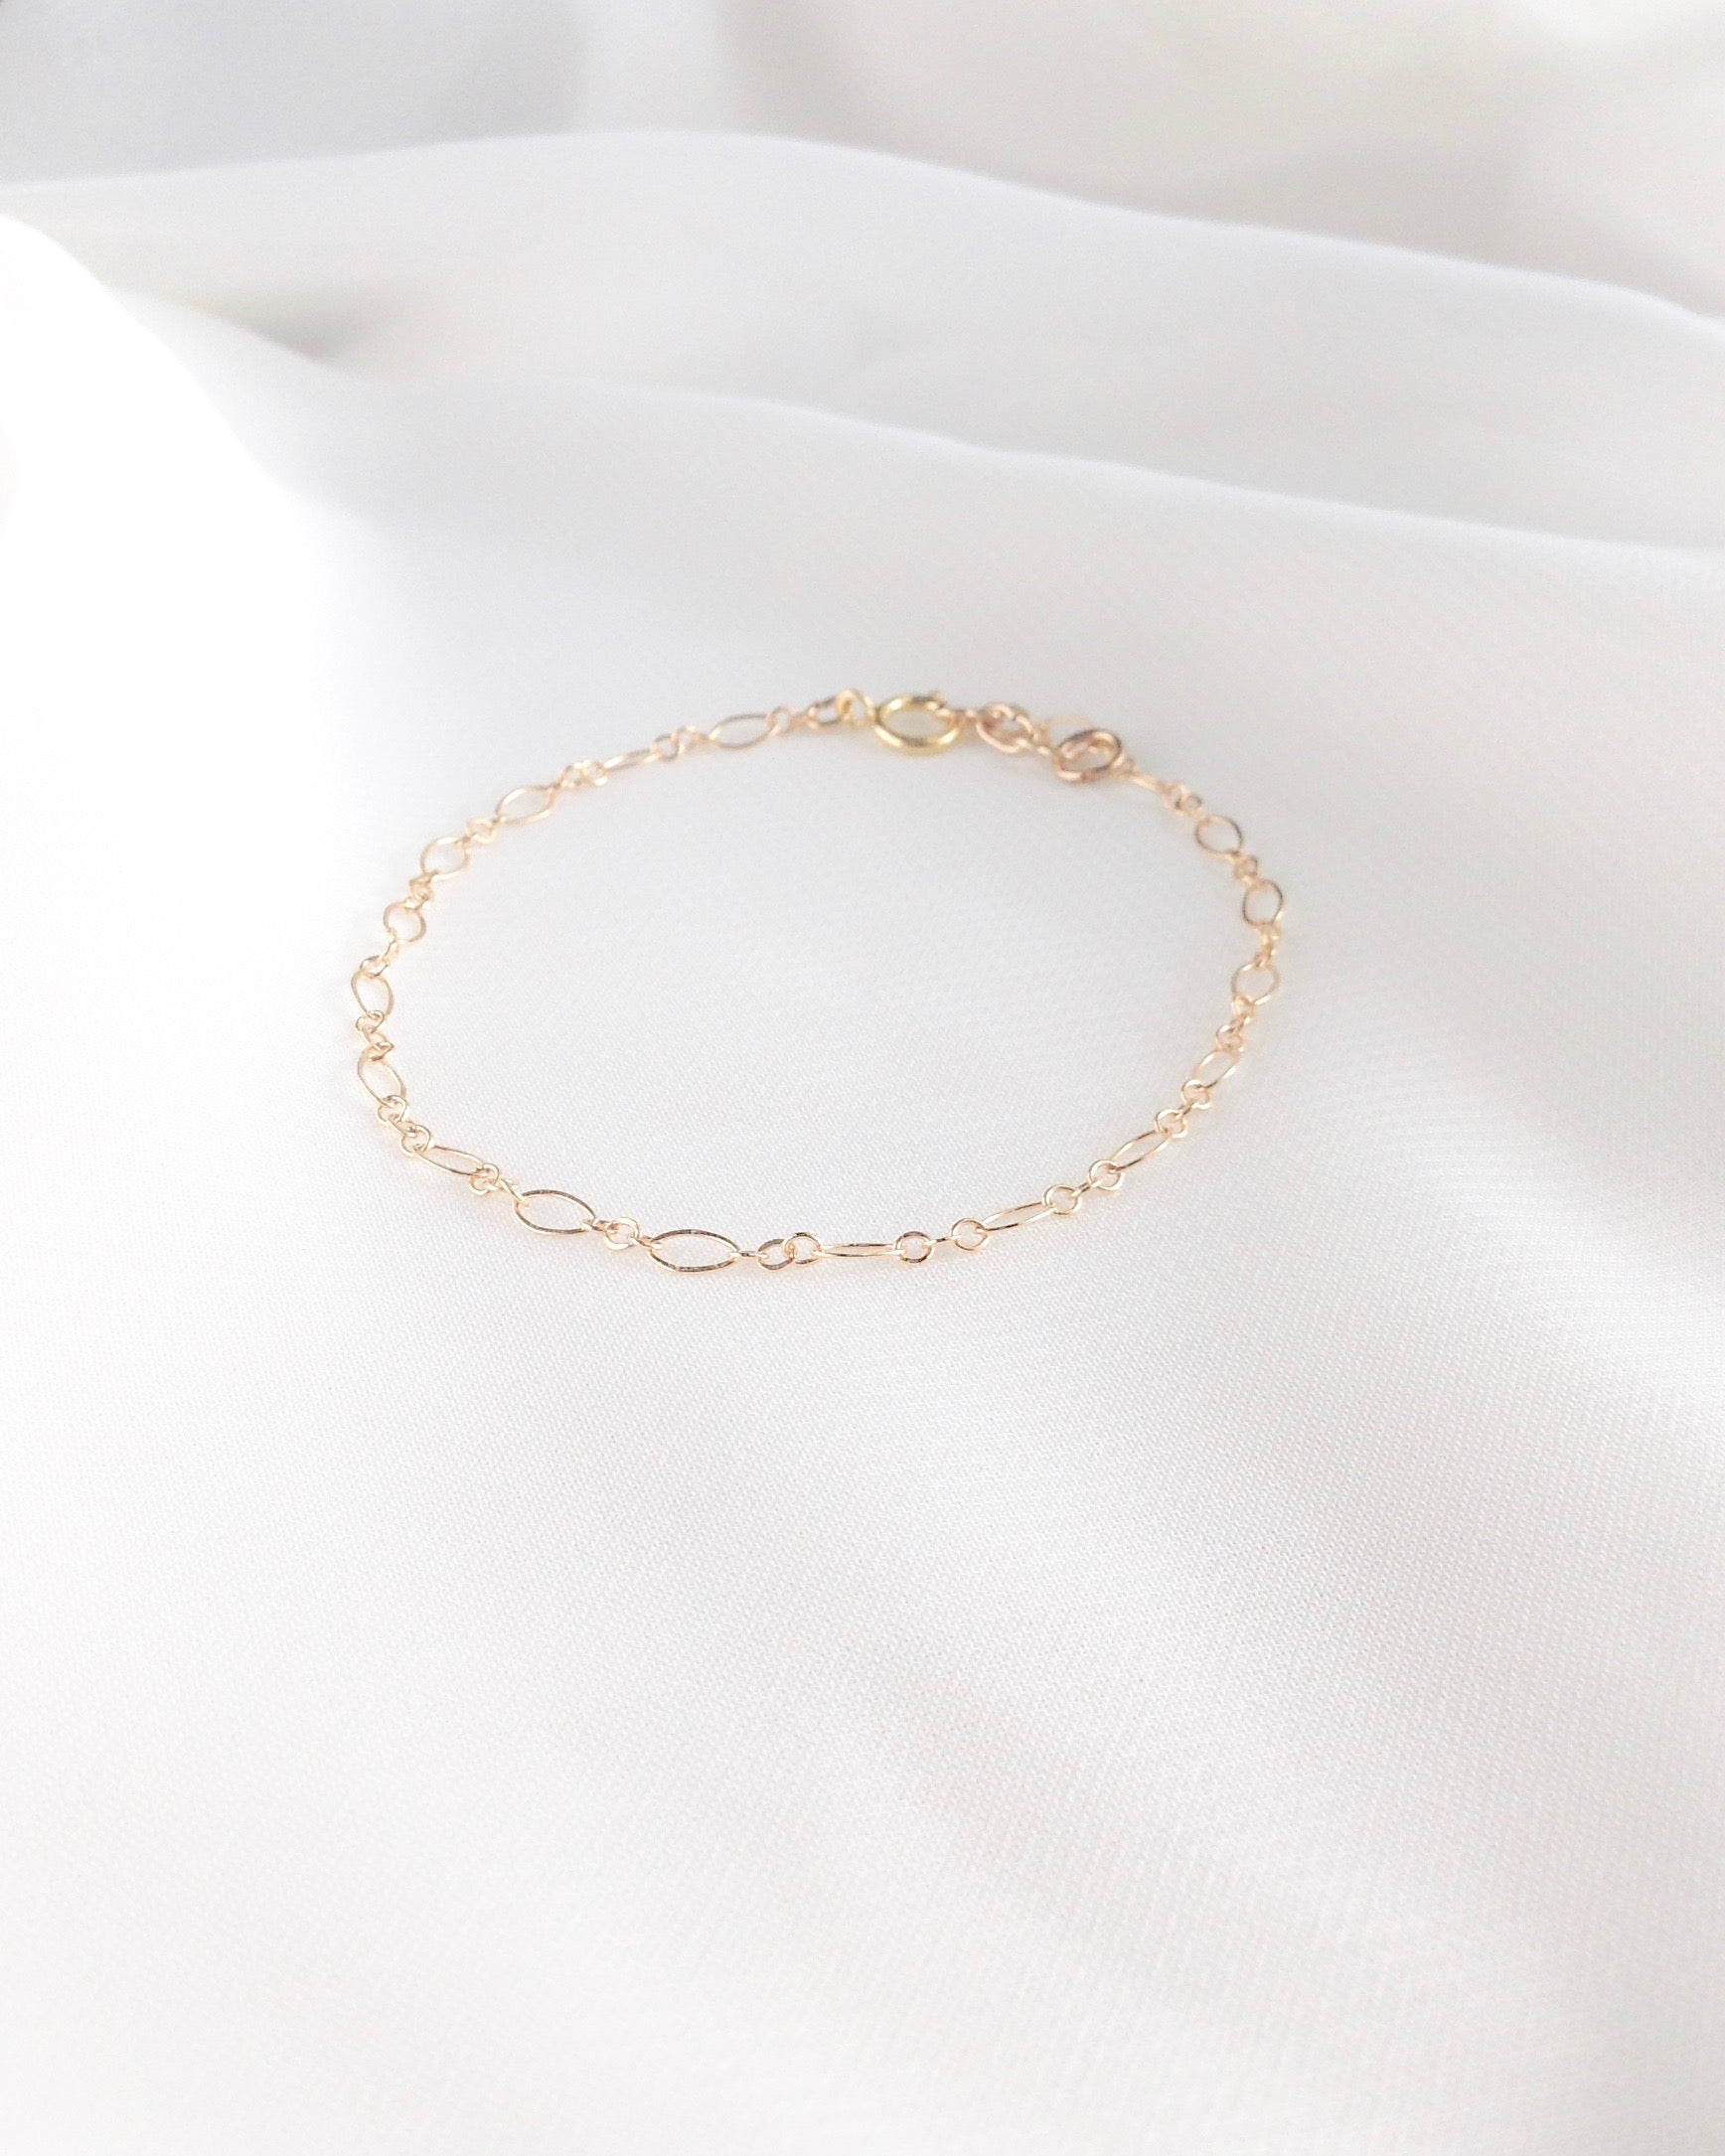 Dainty Minimalist Bracelet in Gold Filled or Sterling Silver | IB Jewelry